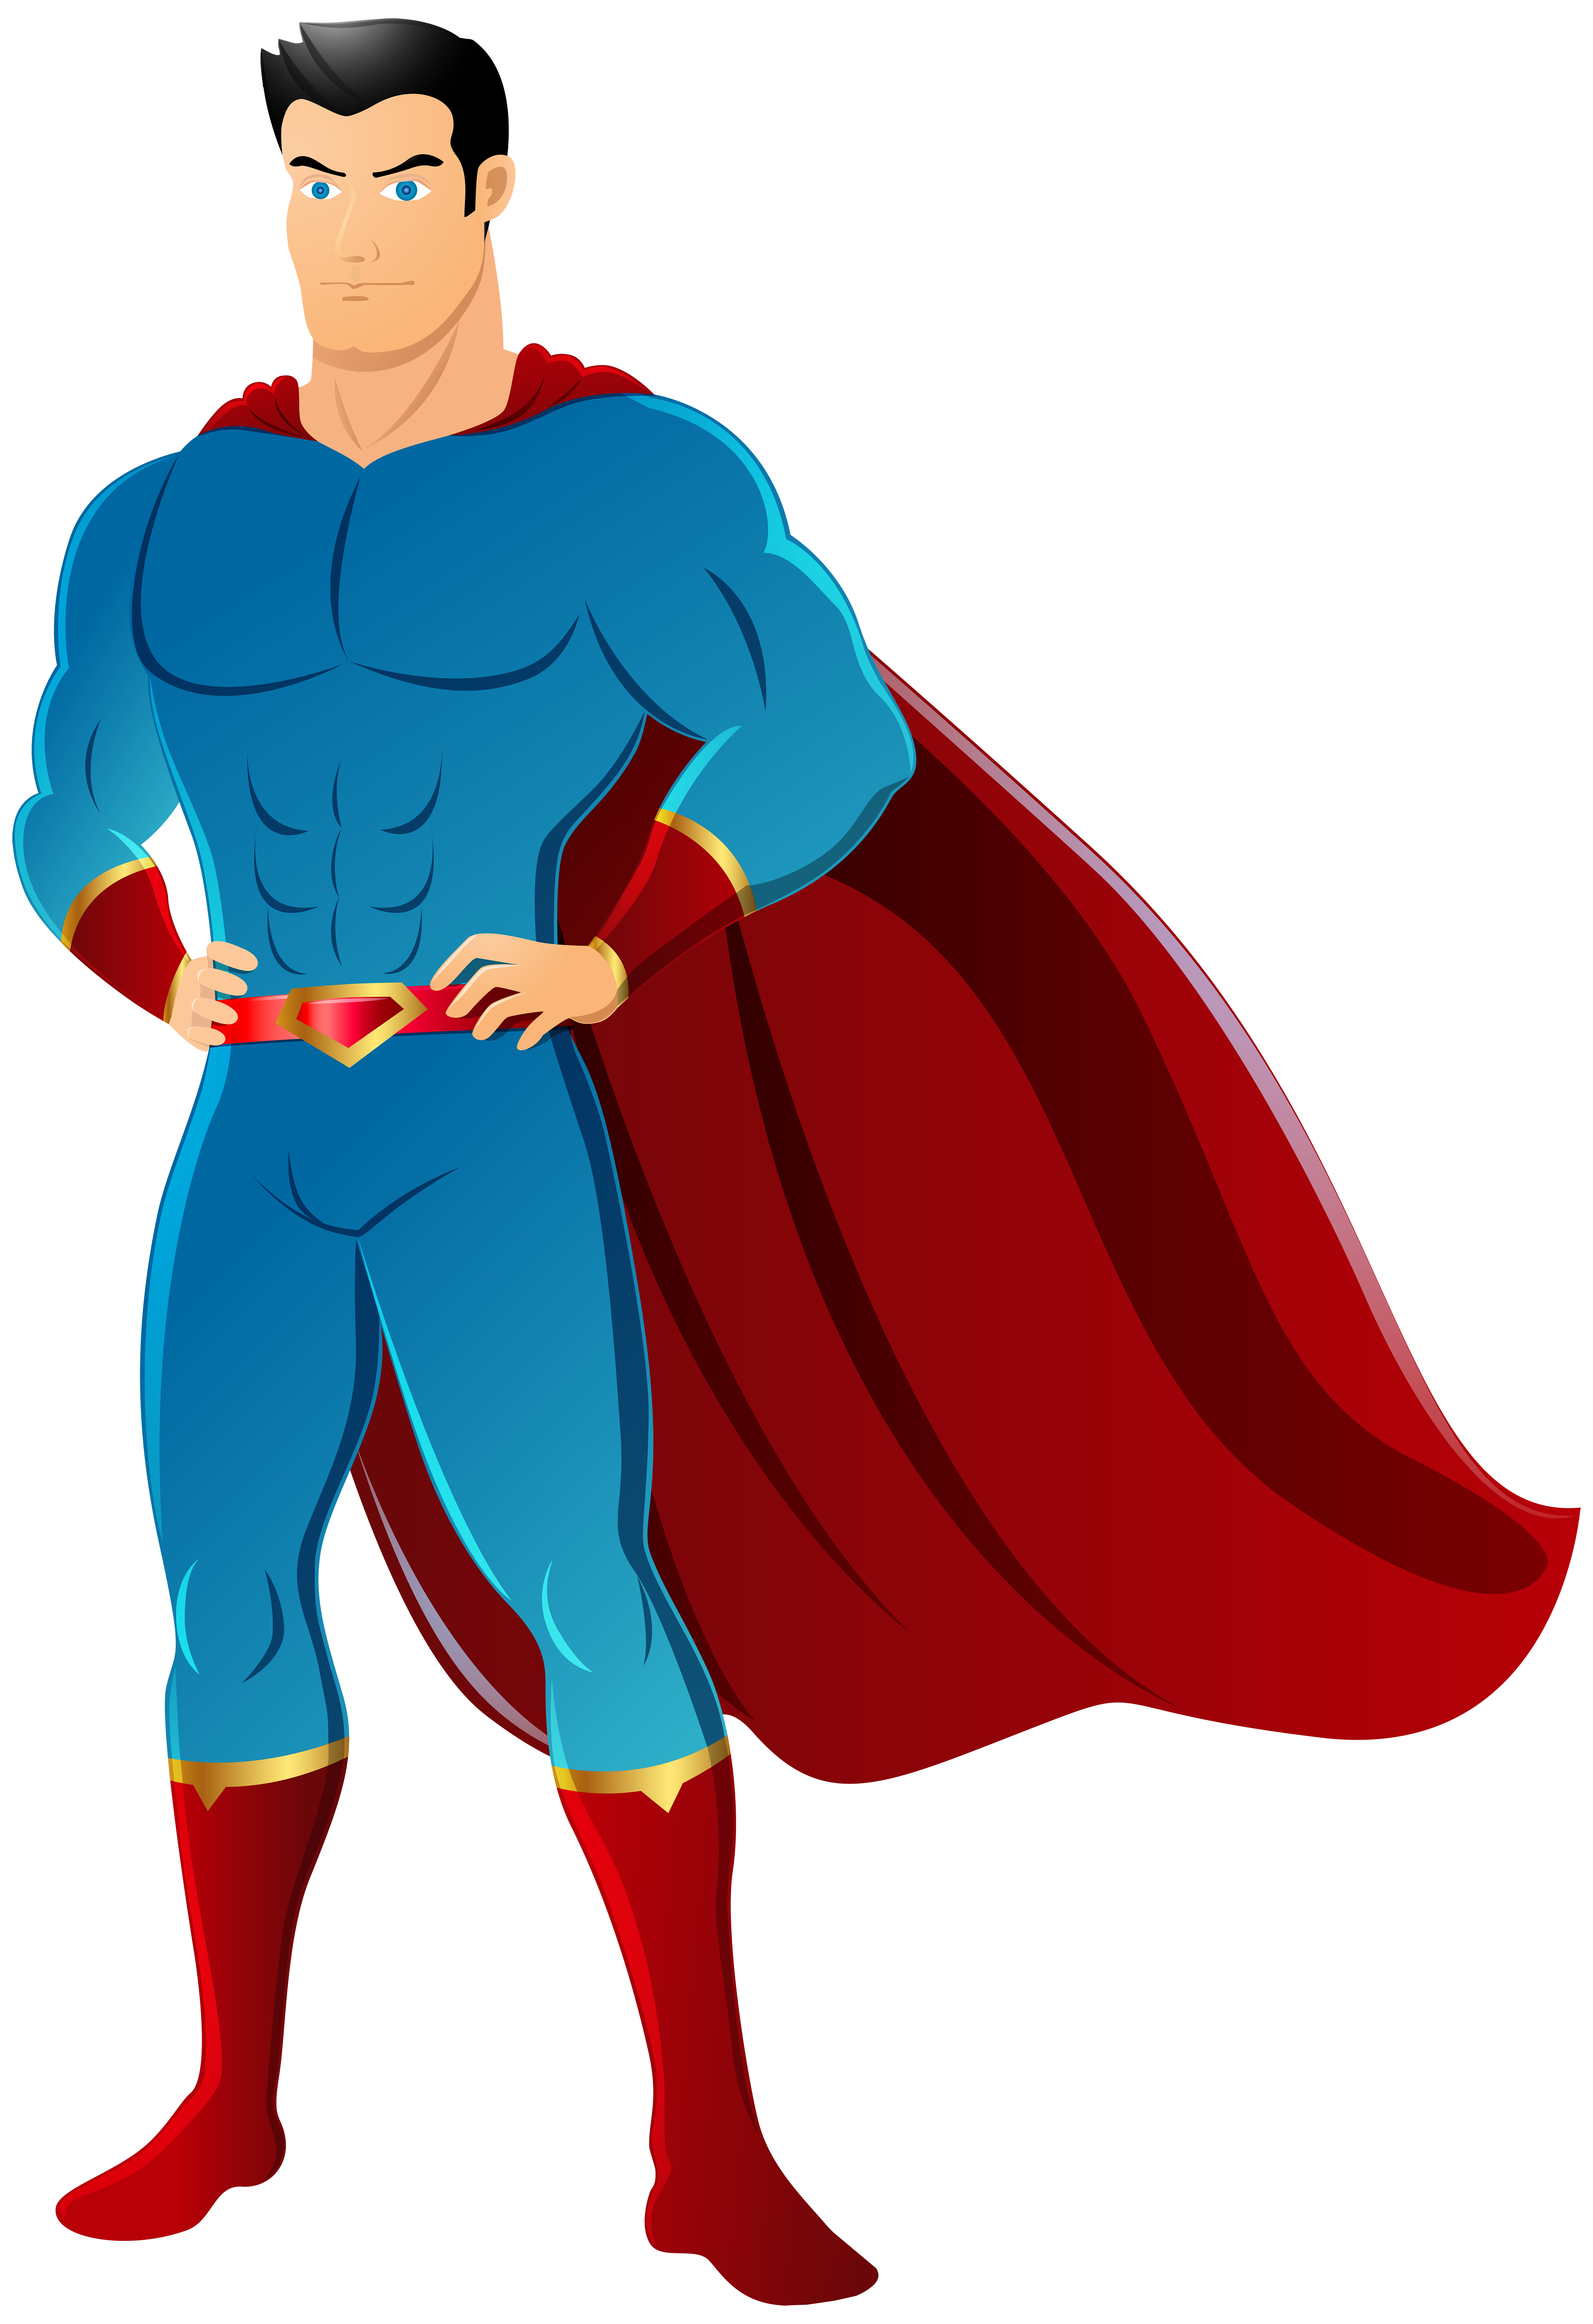 Clipart superman picture royalty free stock Superman Clipart at GetDrawings.com | Free for personal use Superman ... picture royalty free stock